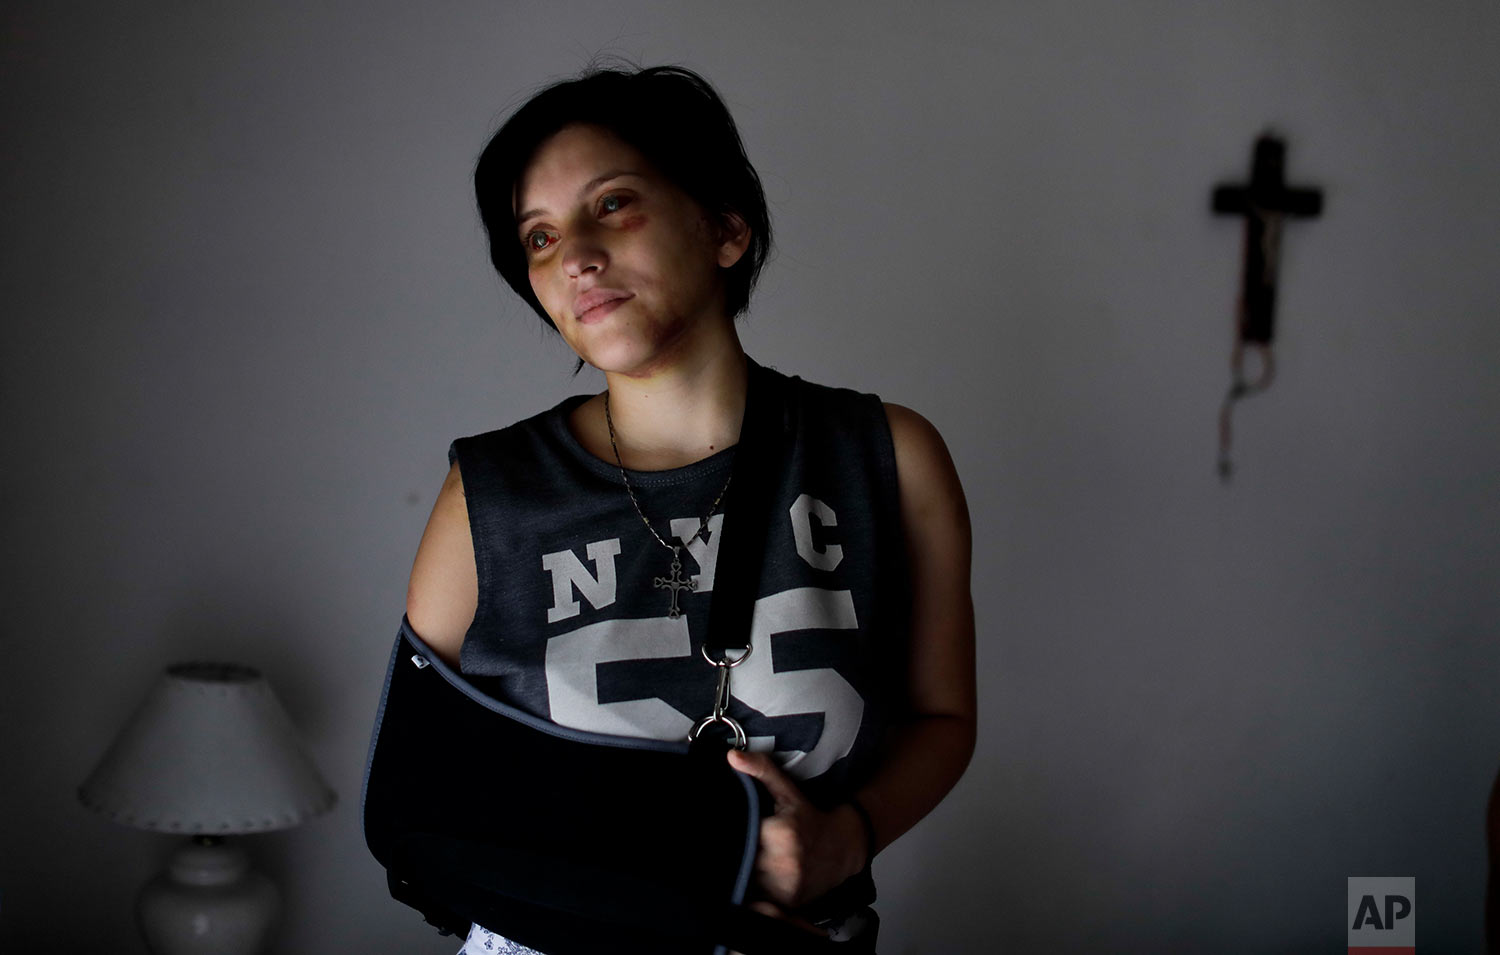 Belen Torres poses for a portrait in Buenos Aires, Argentina, Wednesday, Feb. 8, 2017. Torres was beaten by her boss, just a few days after starting her first job in the capital doing administrative paperwork for an anesthesiologist, to help her family pay the bills. The doctor asked her to get high and tried to have sex with her. After he beat her, she was able to escape and run outside, where an unknown man called 911. (AP Photo/Natacha Pisarenko)